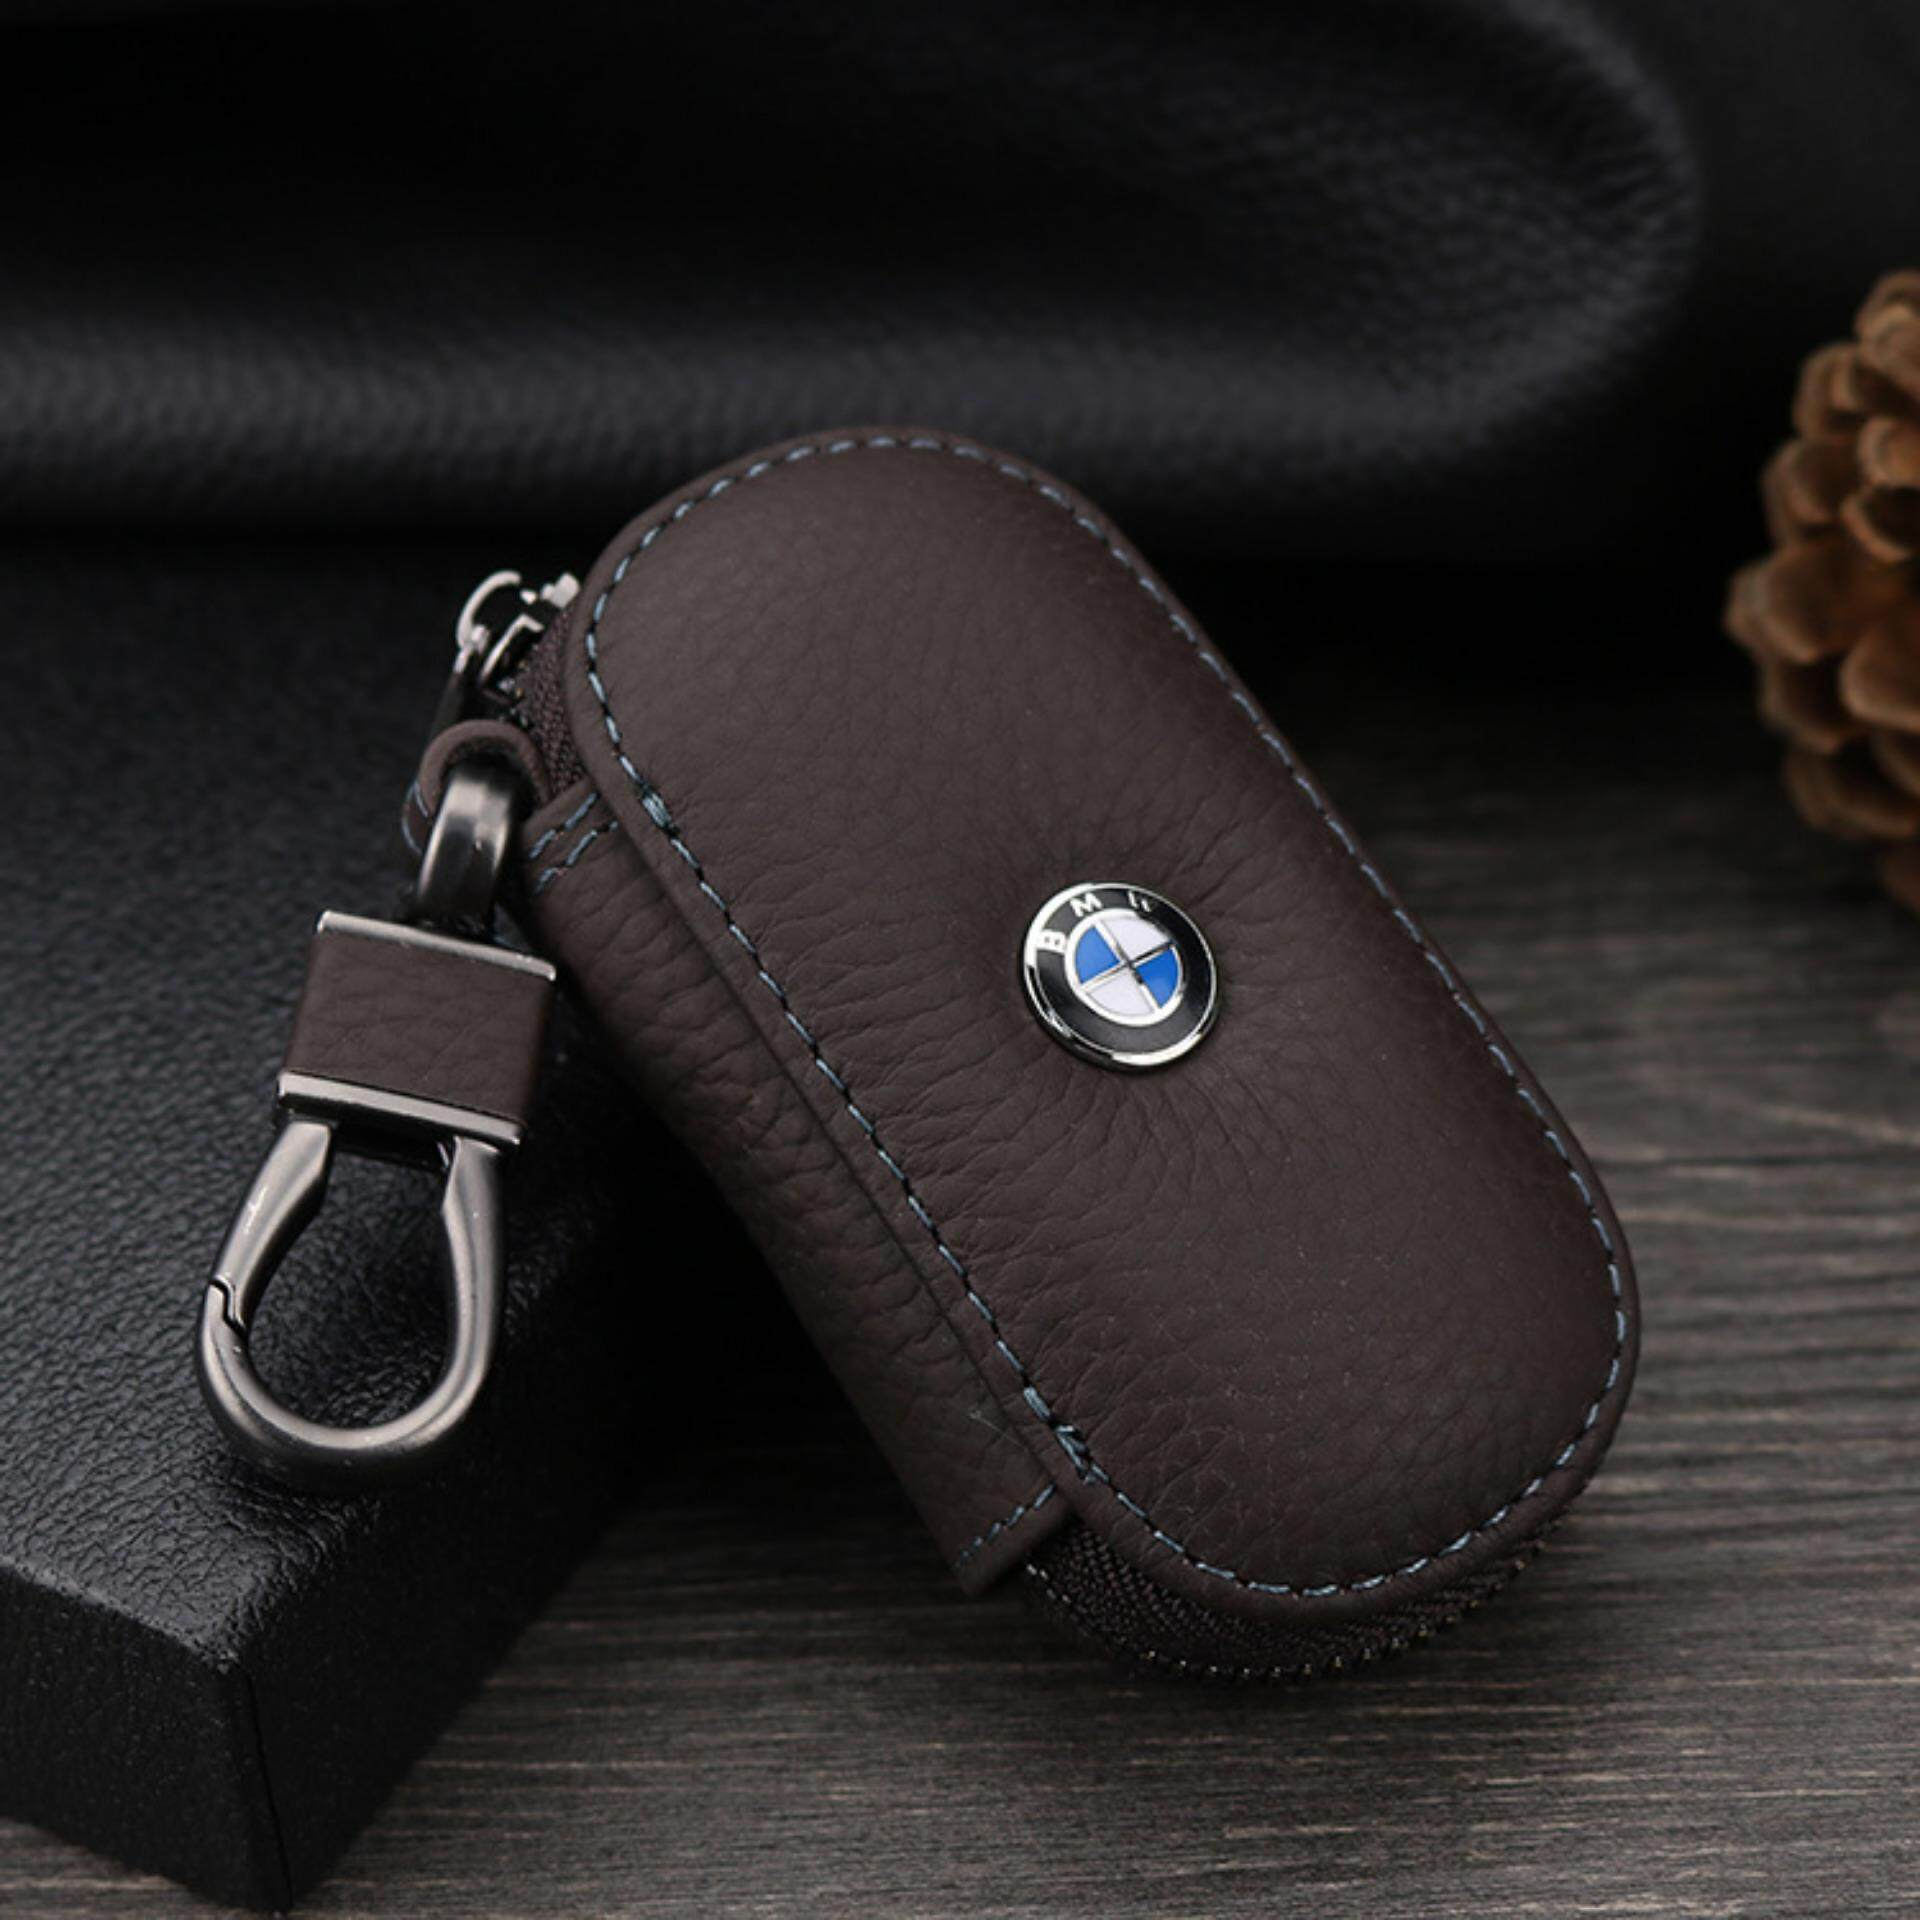 Ulasan Lengkap Tentang 1Pc Leather Key Wallet Car Key Case For For Bmw E90 F10 F30 E34 F20 X5 E53 E30 X6 X1 X3 E46 E39 Coffee Intl